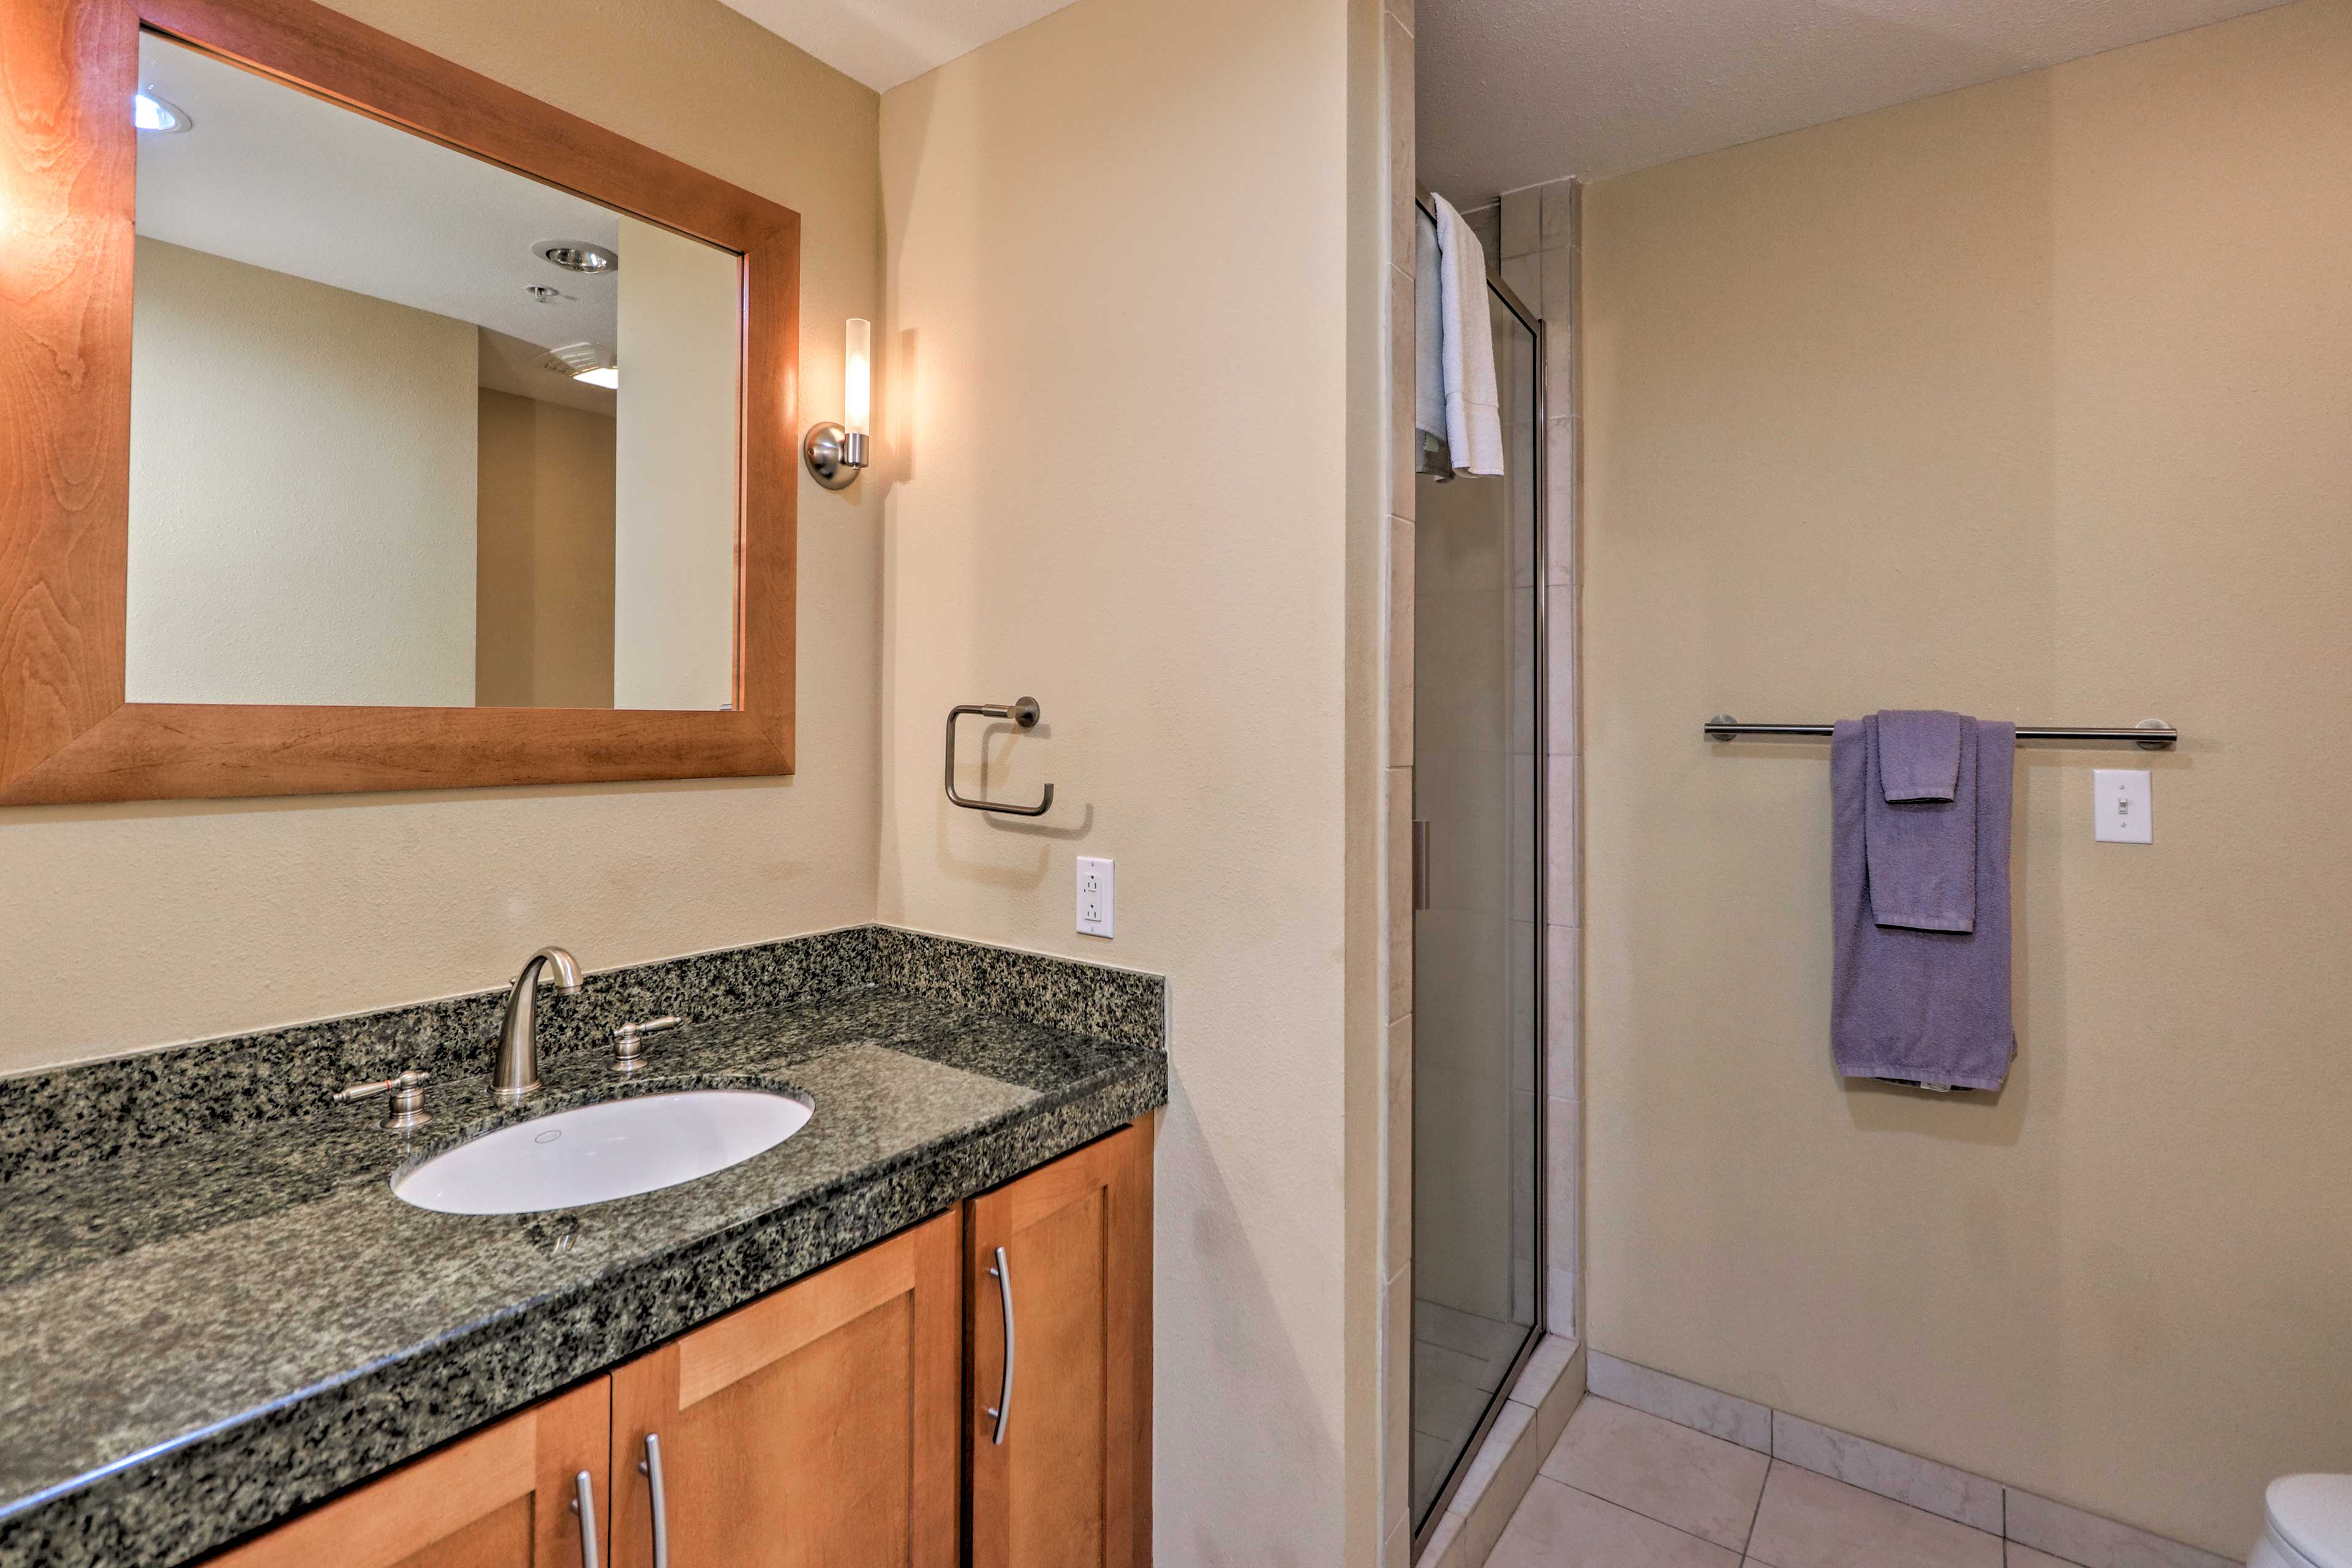 Fresh towels are provided for your stay.